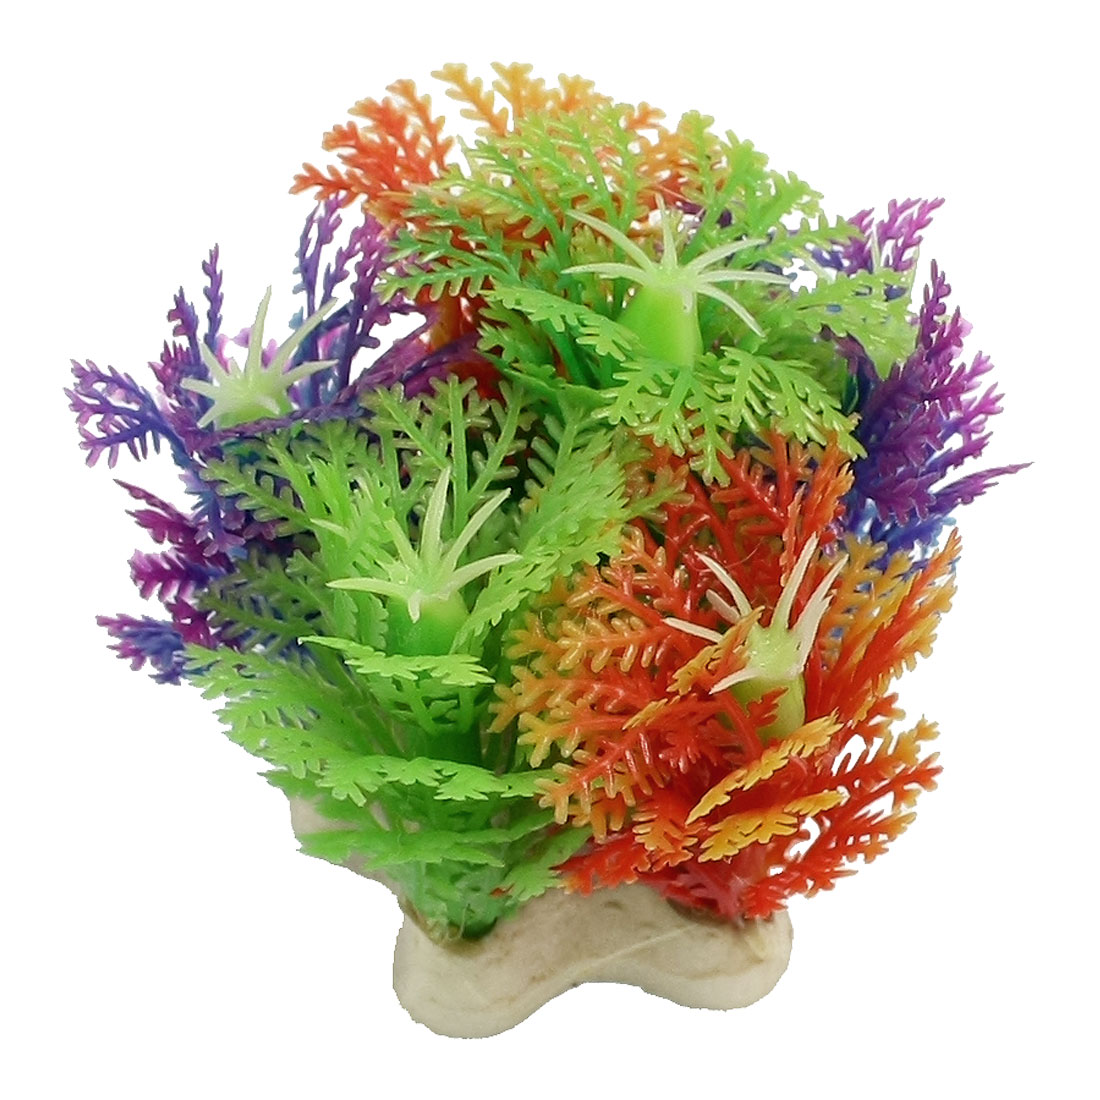 Green Yellow Purple Plastic Snowflake Shape Fish Tank Ornament Plant 2.1""